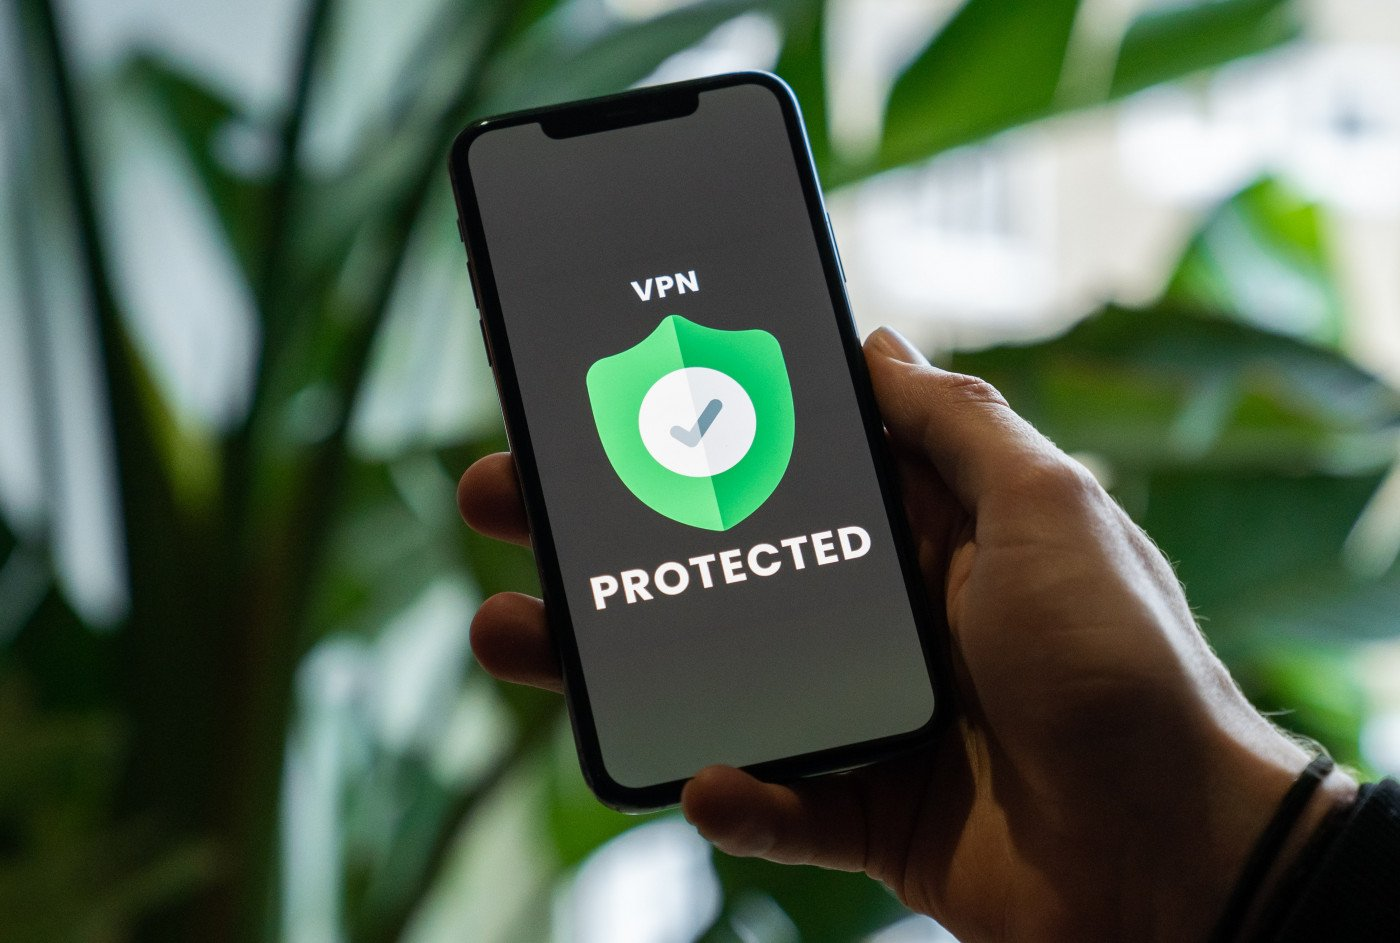 Top Trending VPN Apps for iOS & Android in the United States